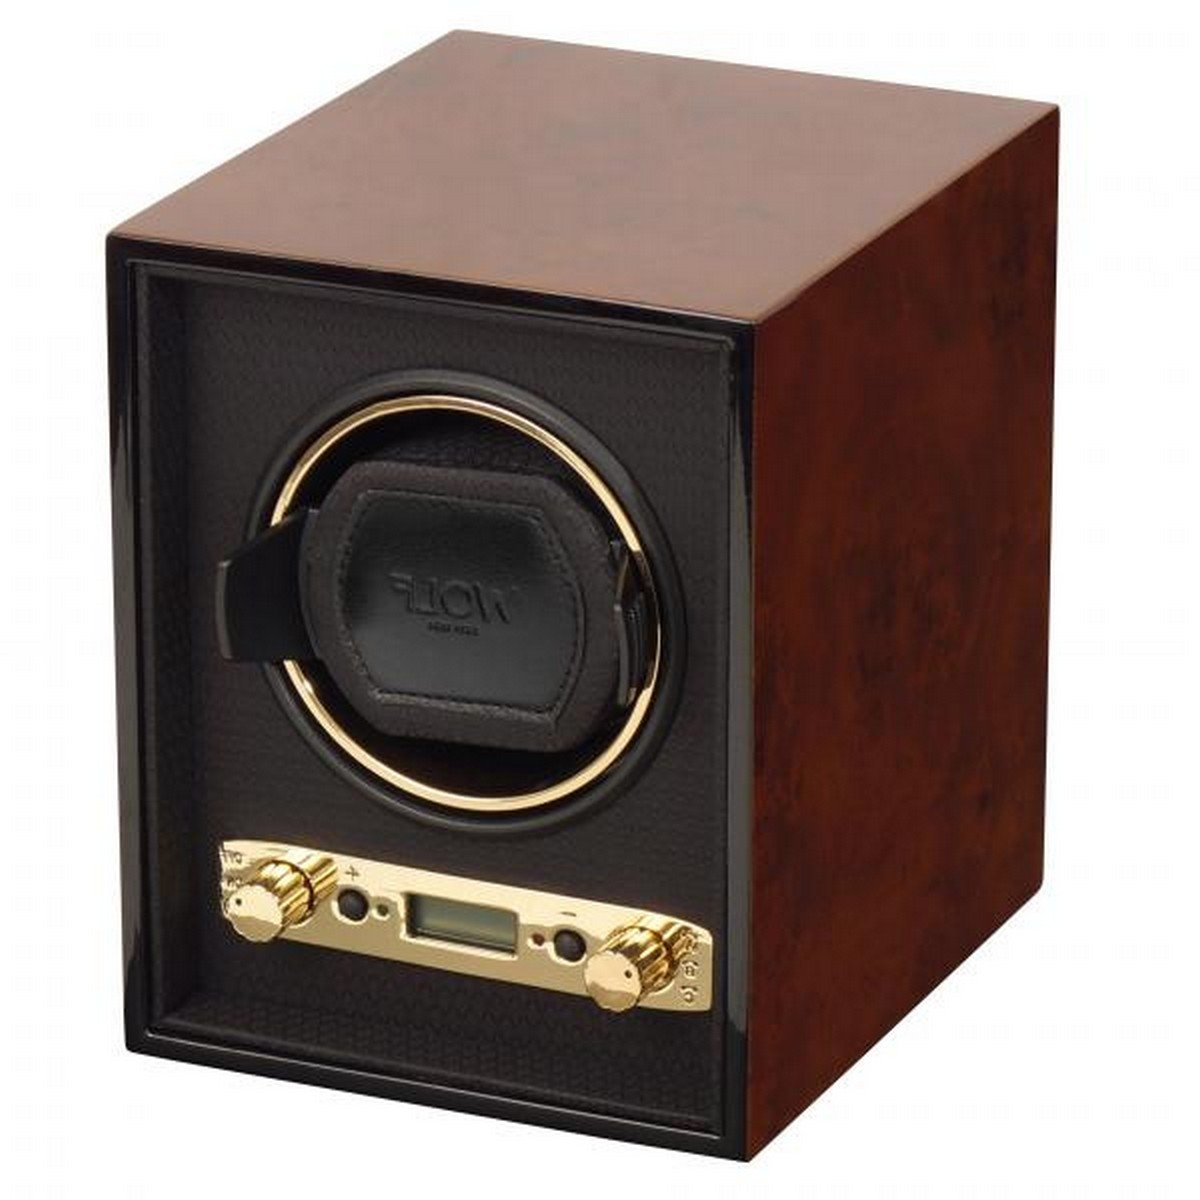 Men's Single Watch Winder Box Wood Veneer with 57 Winding Programs for Home or Travel in 3 Colors